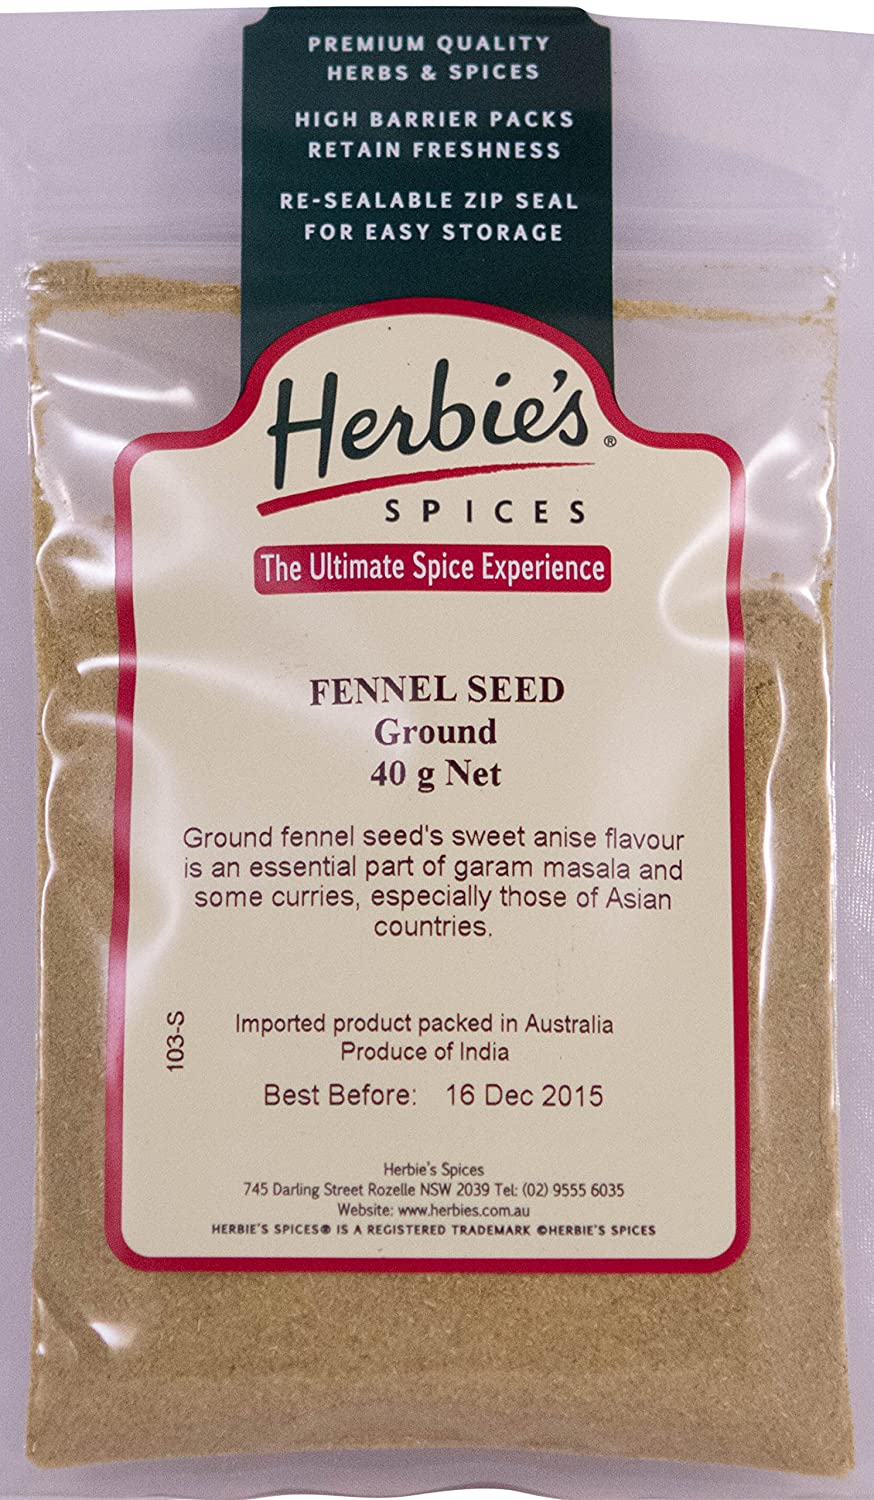 Herbie's Spices Fennel Seed - Popular shop is the lowest price challenge Max 89% OFF 40g Ground